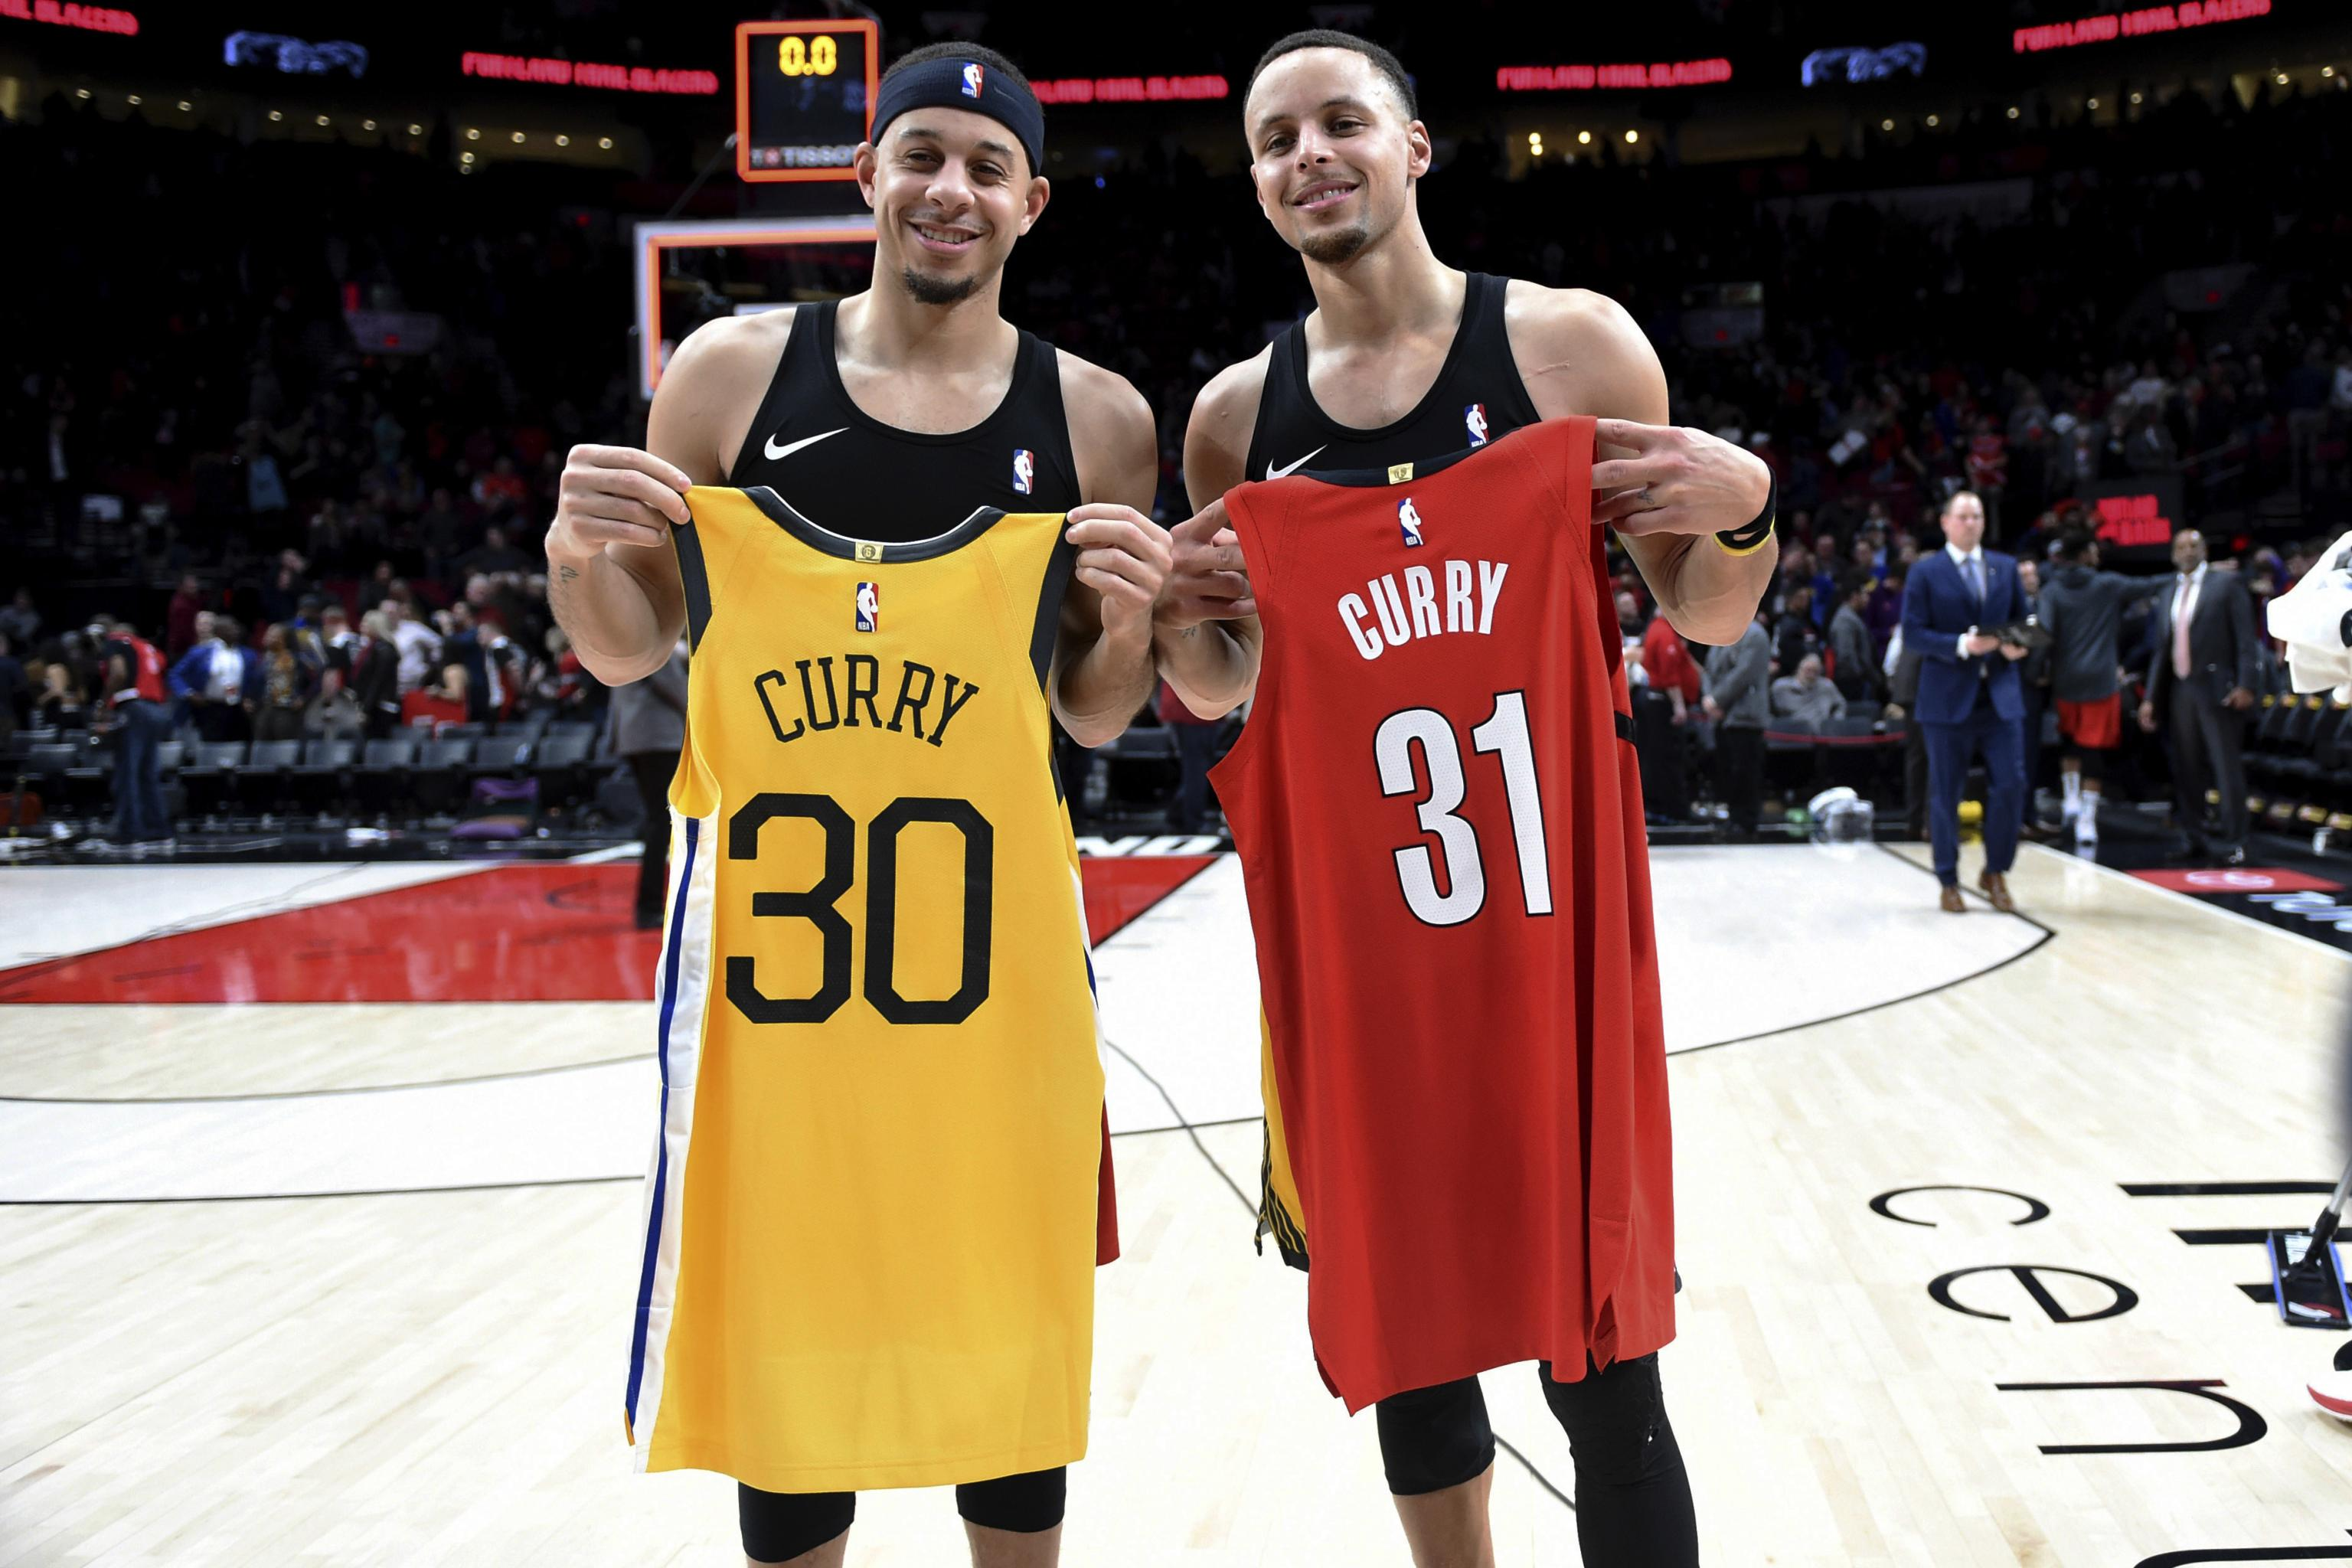 Video Watch Steph Seth Curry S Parents Flip Coin For Who To Root For In Wcf Bleacher Report Latest News Videos And Highlights